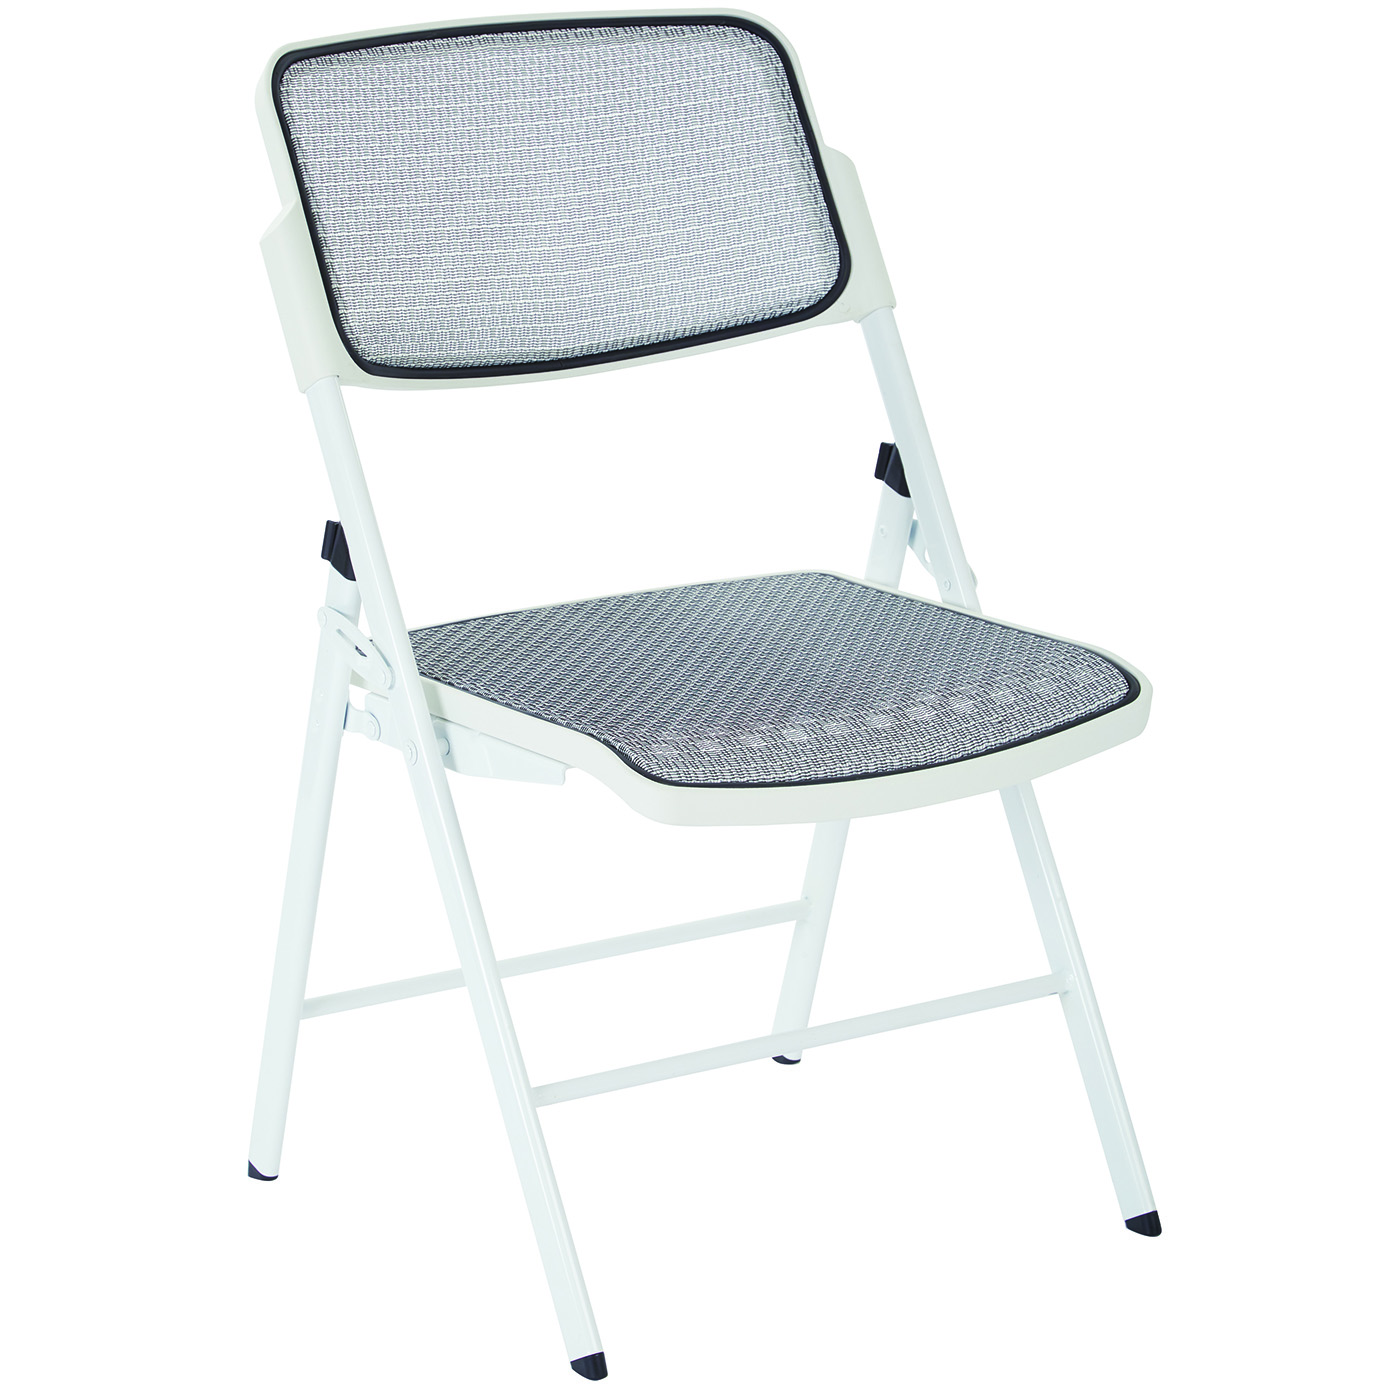 White Stackable Chairs Office Star 2 Modern White Fabric Metal Progrid Mesh Seat Back Folding Chairs 81101